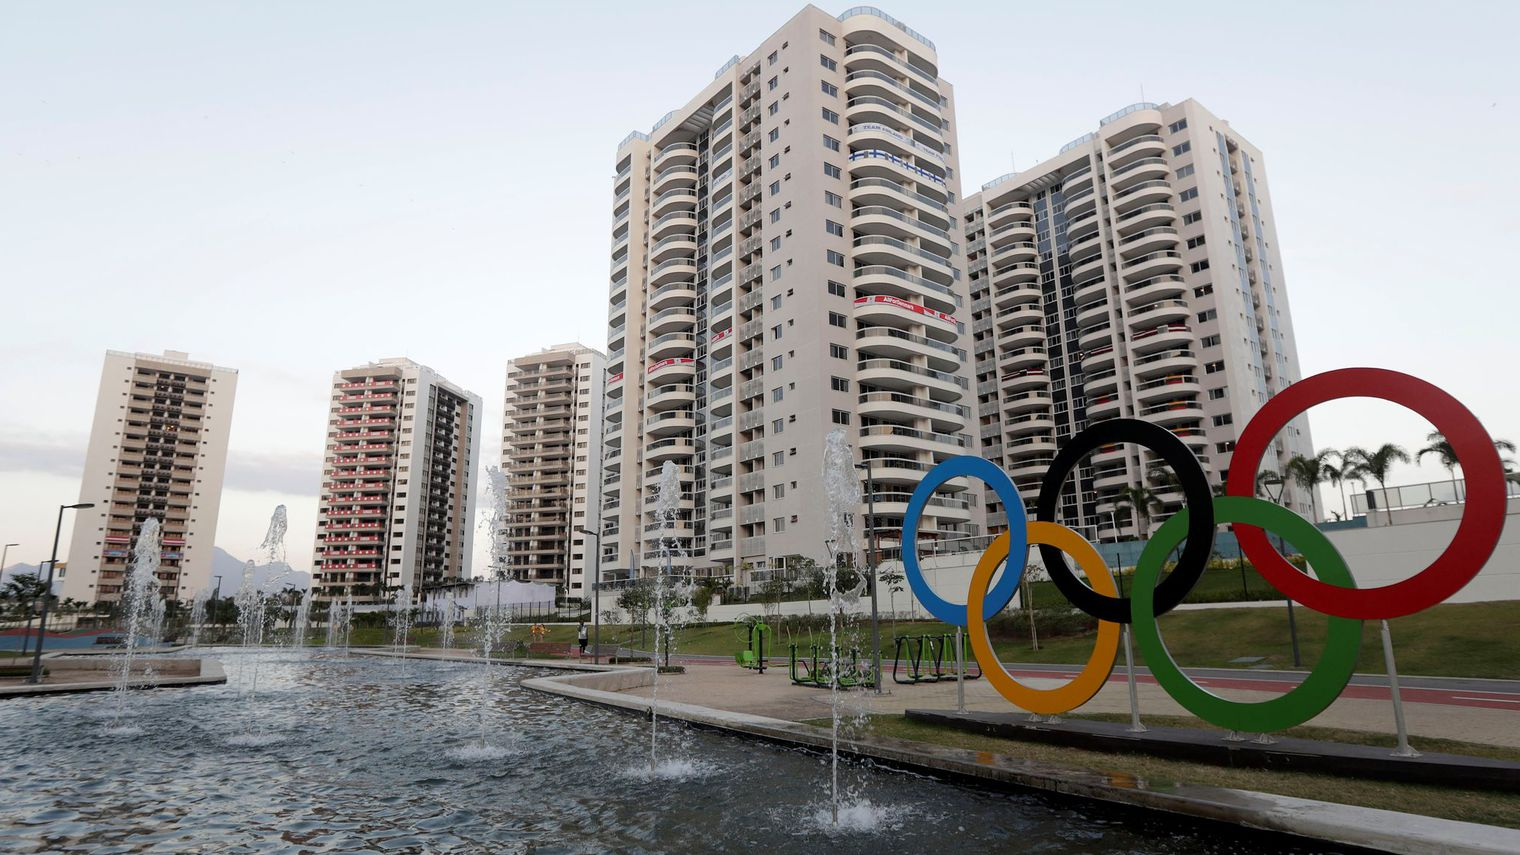 general-view-of-athletes-accommodation-can-be-seen-during-a-guided-tour-for-journalists-to-the-2016-rio-olympics-village-in-rio-de-janeiro_5642745